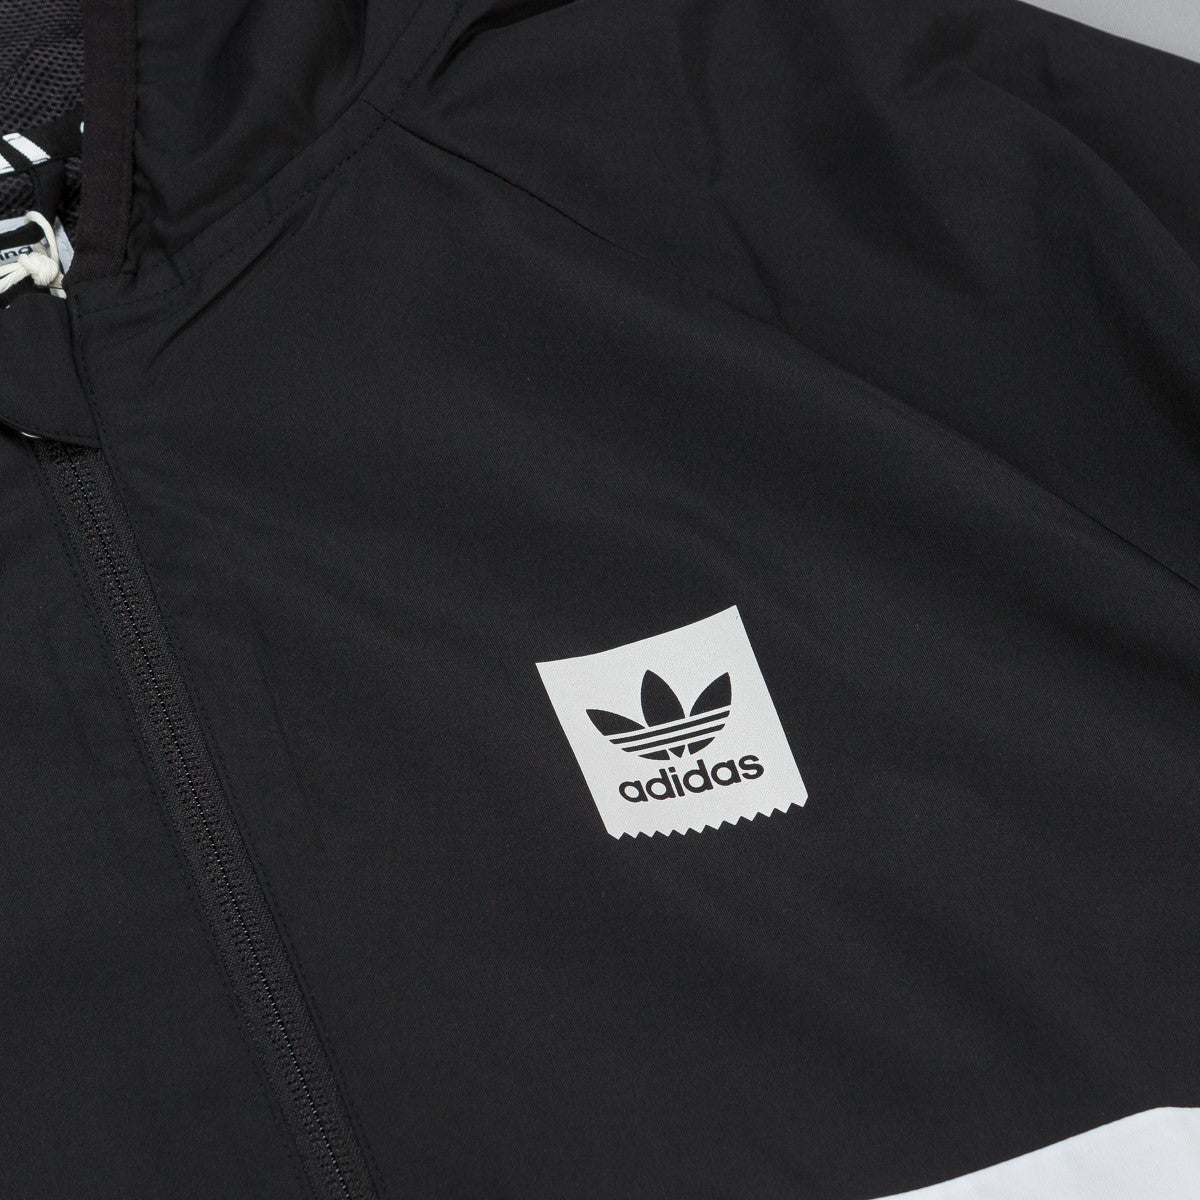 Adidas Blackbird Windbreaker Jacket - Black